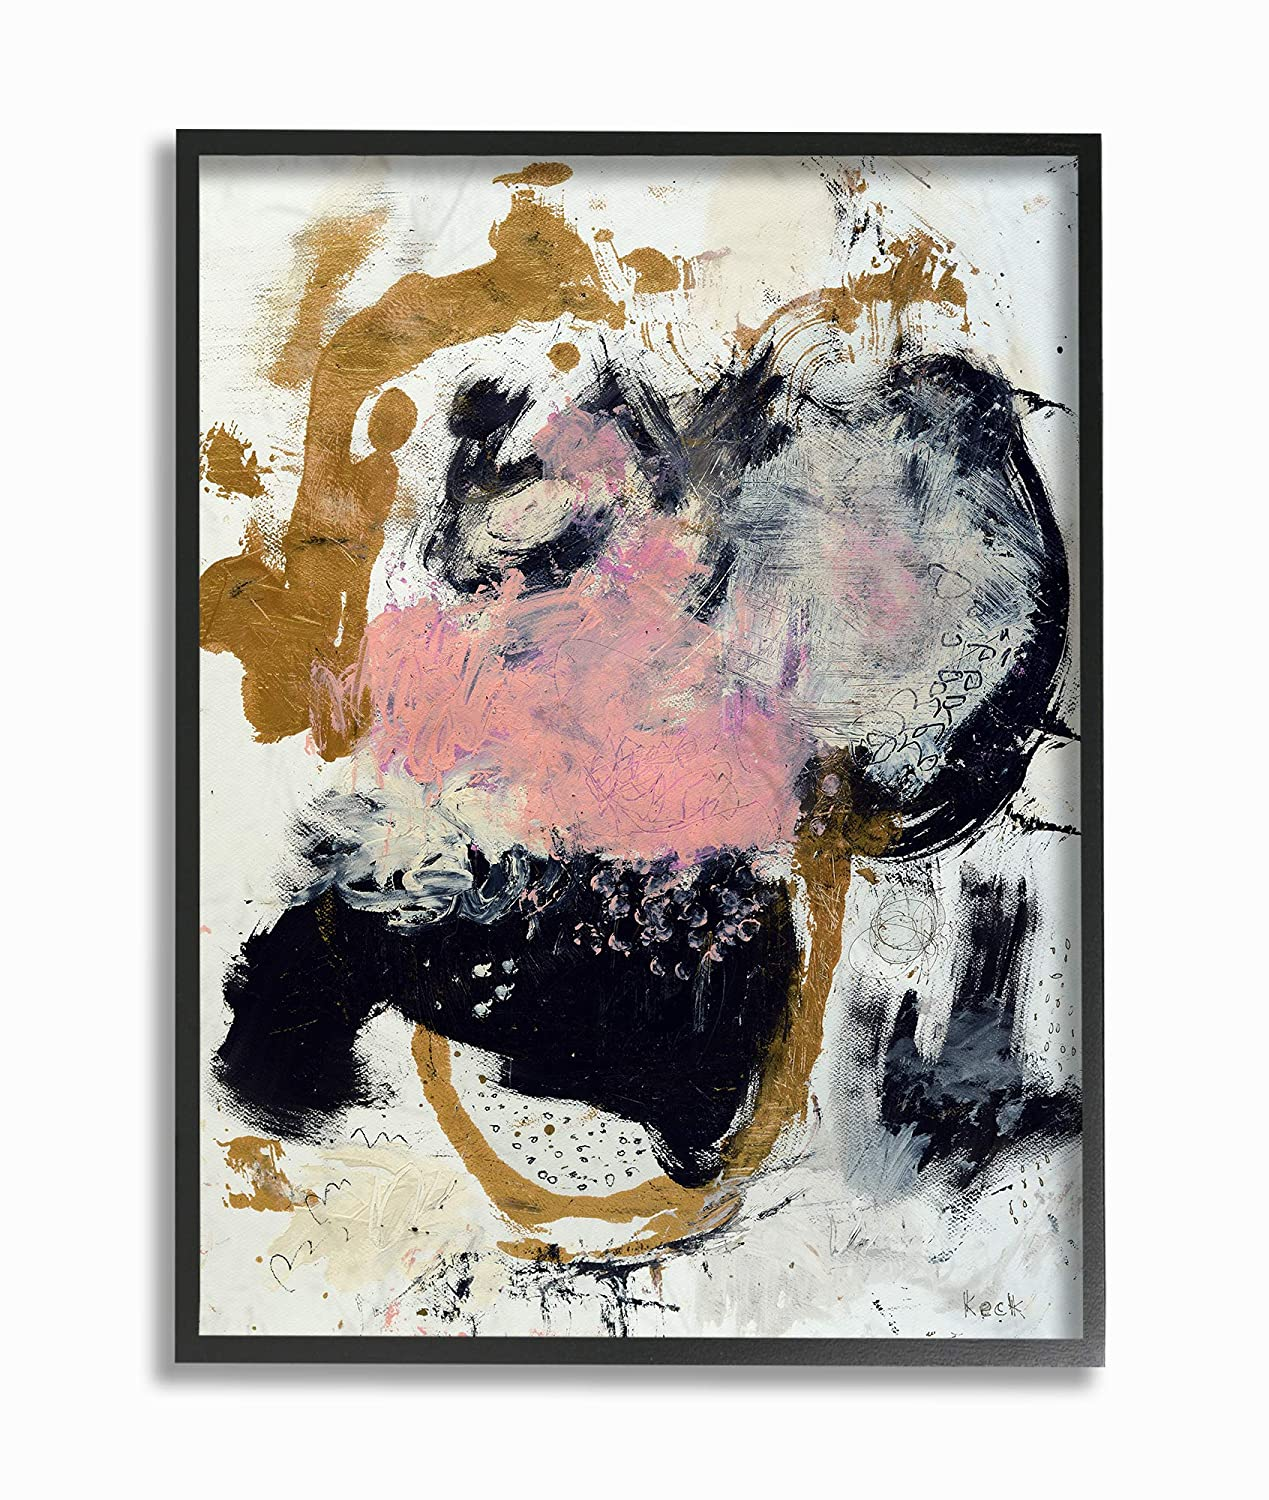 The Stupell Home Decor Pink Black and Yellow Dry Brushed Abstract Painting Framed Giclee Texturized Art Multi-Color 16 x 20